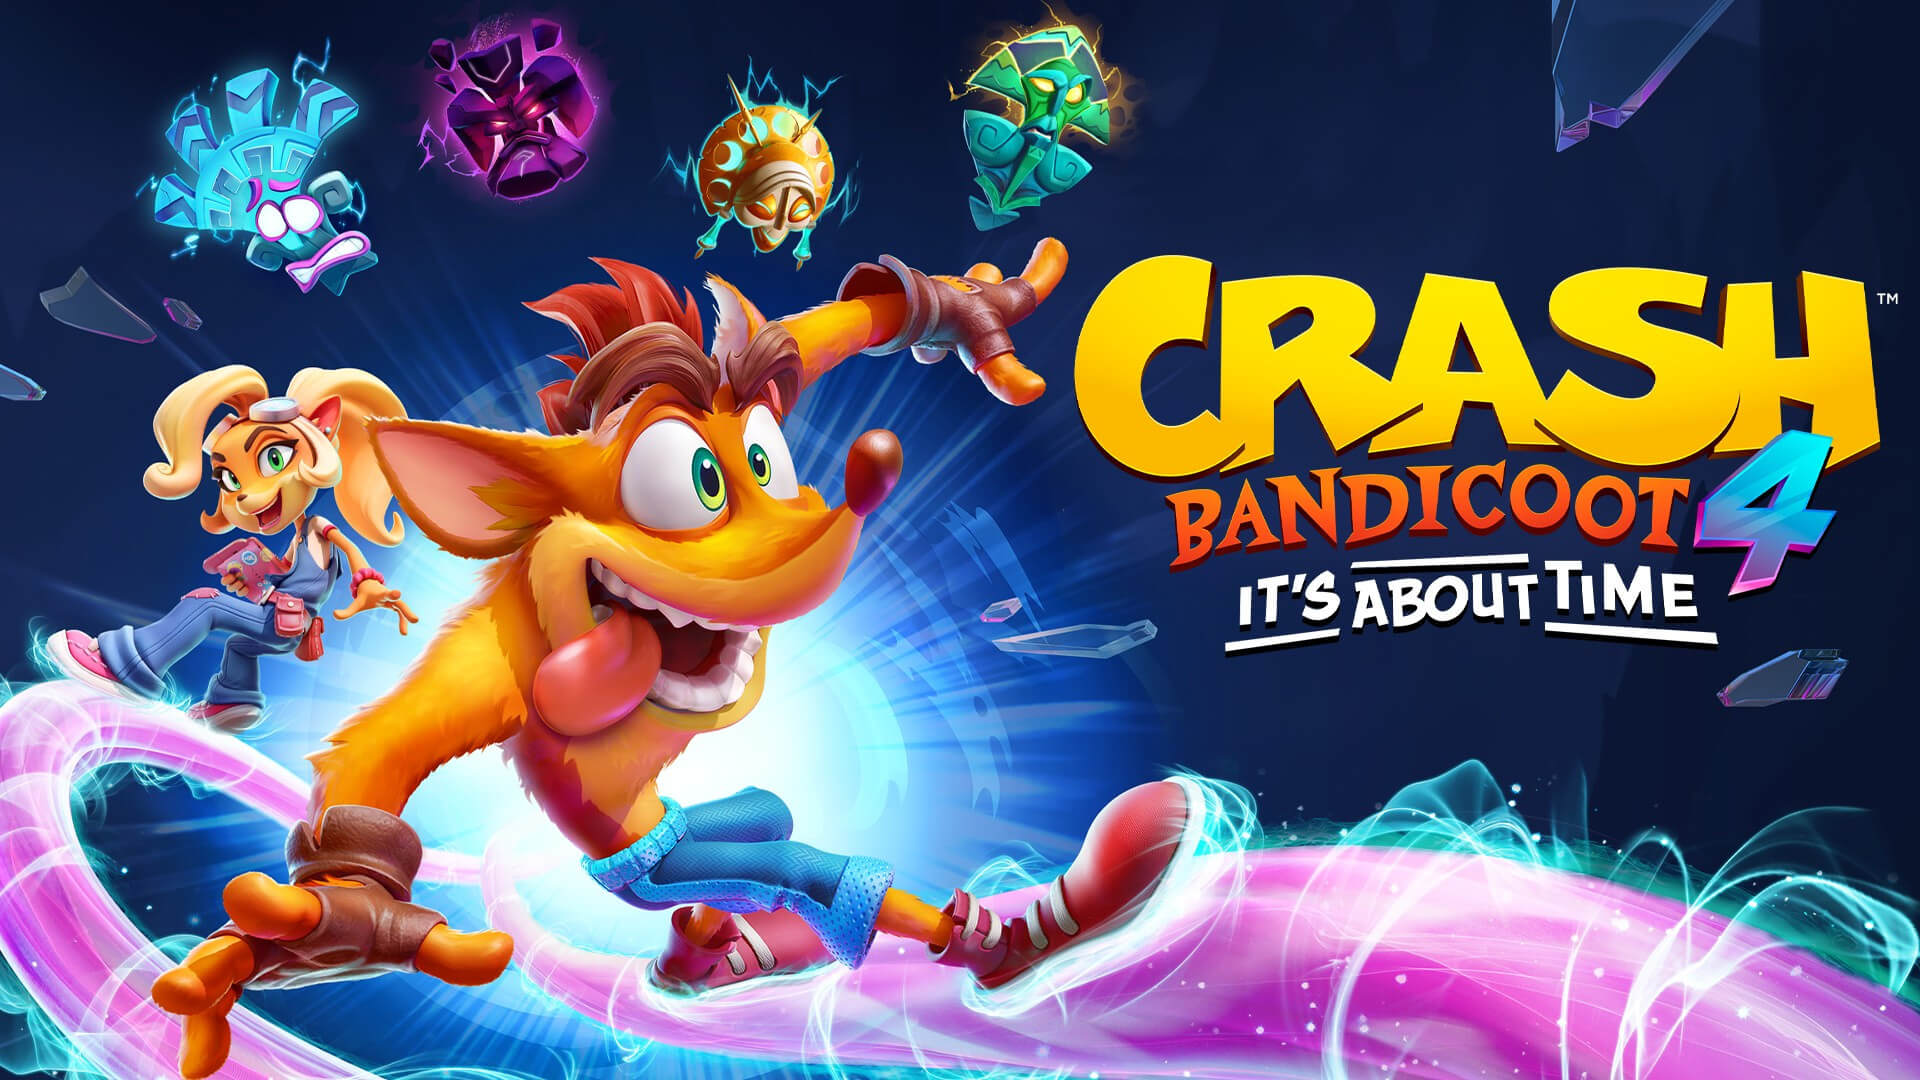 crash bandicoot 4 its about time switch version found in website source code